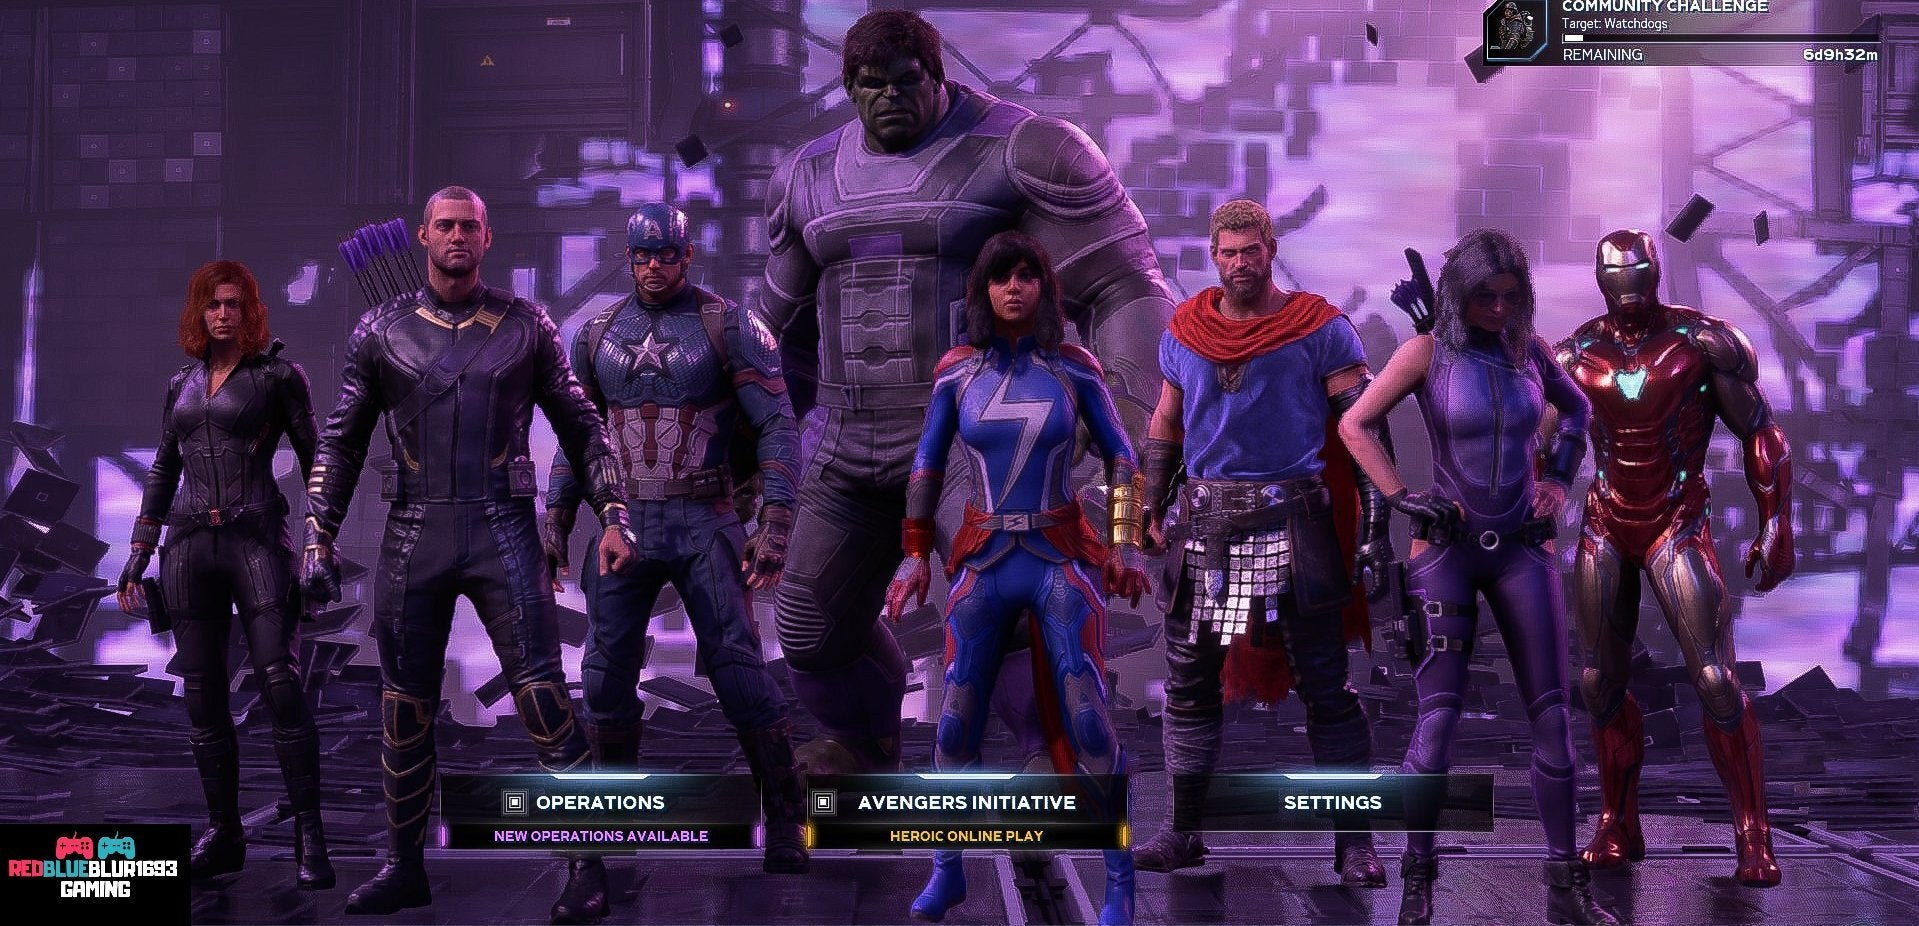 A shot of all of the Avengers geared up for battle